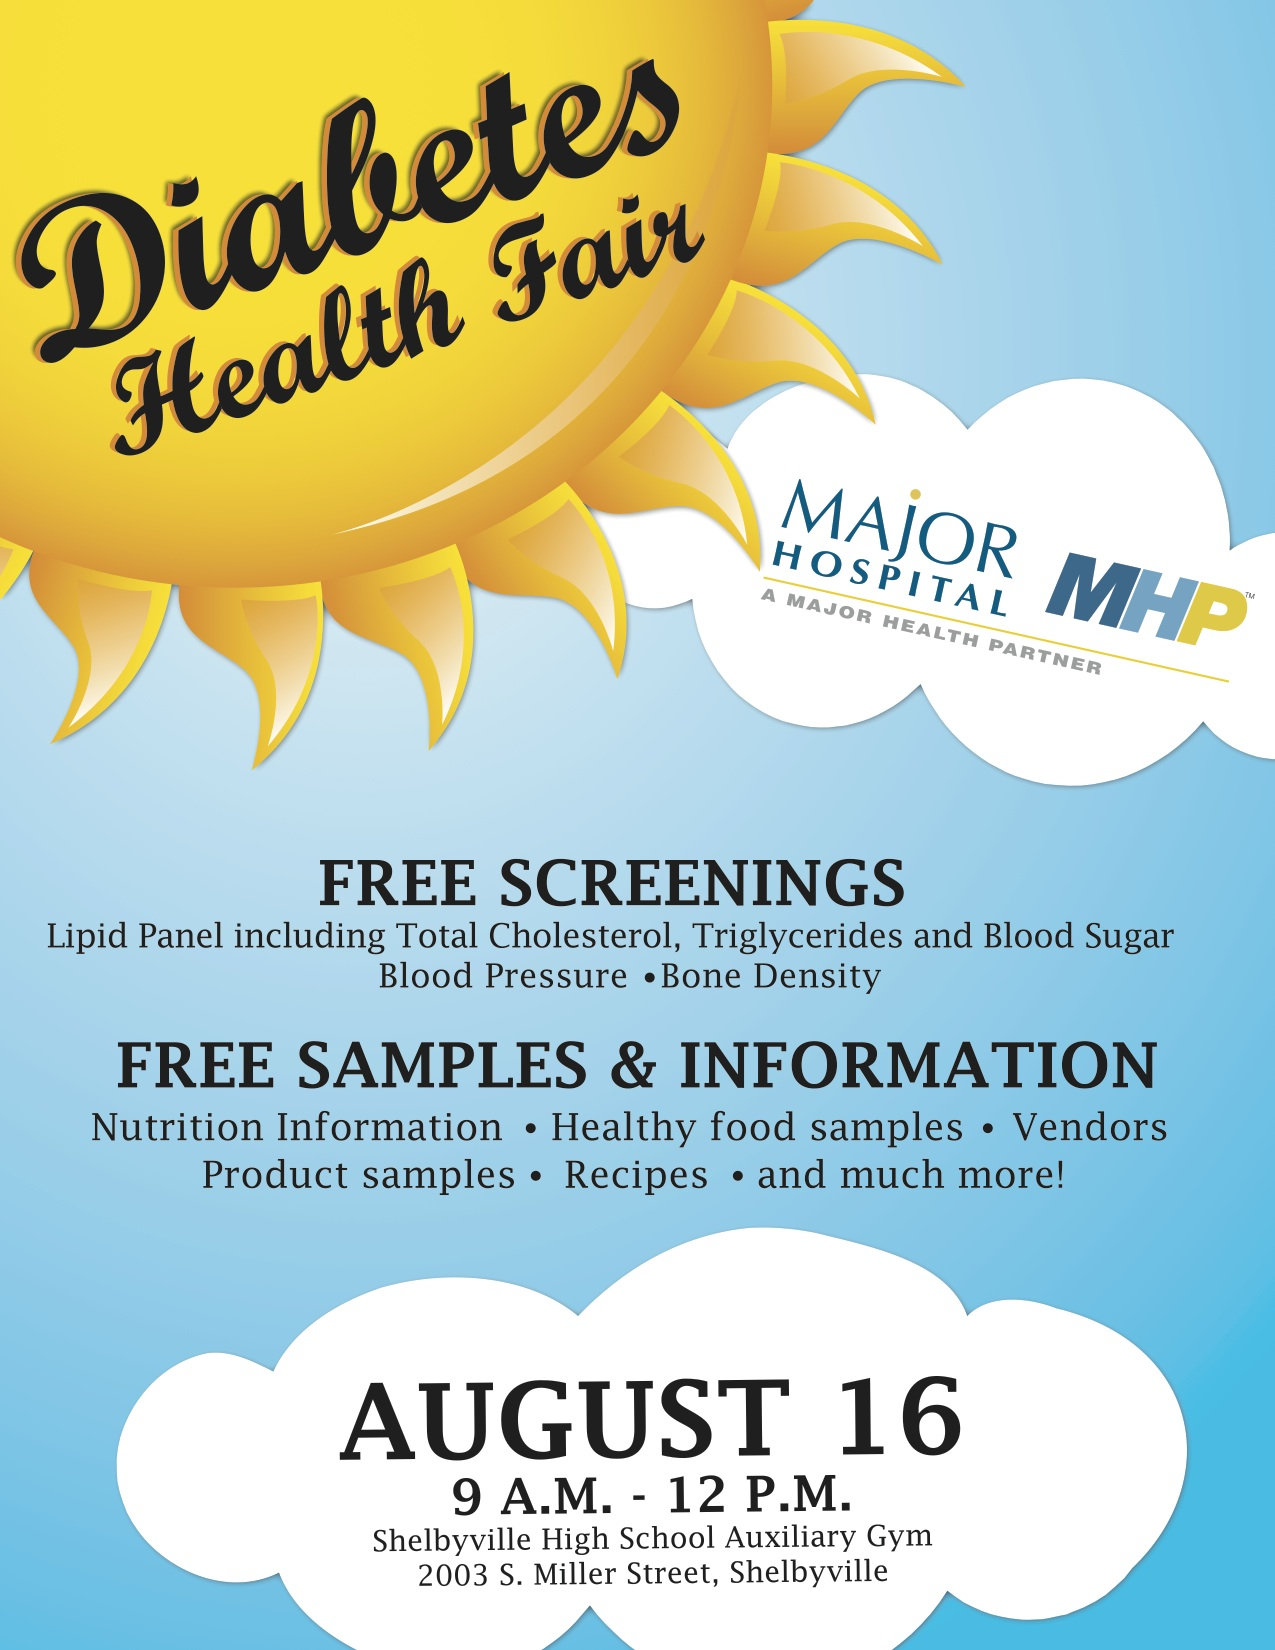 Diabetes Health Fair Shelbyvilletoday